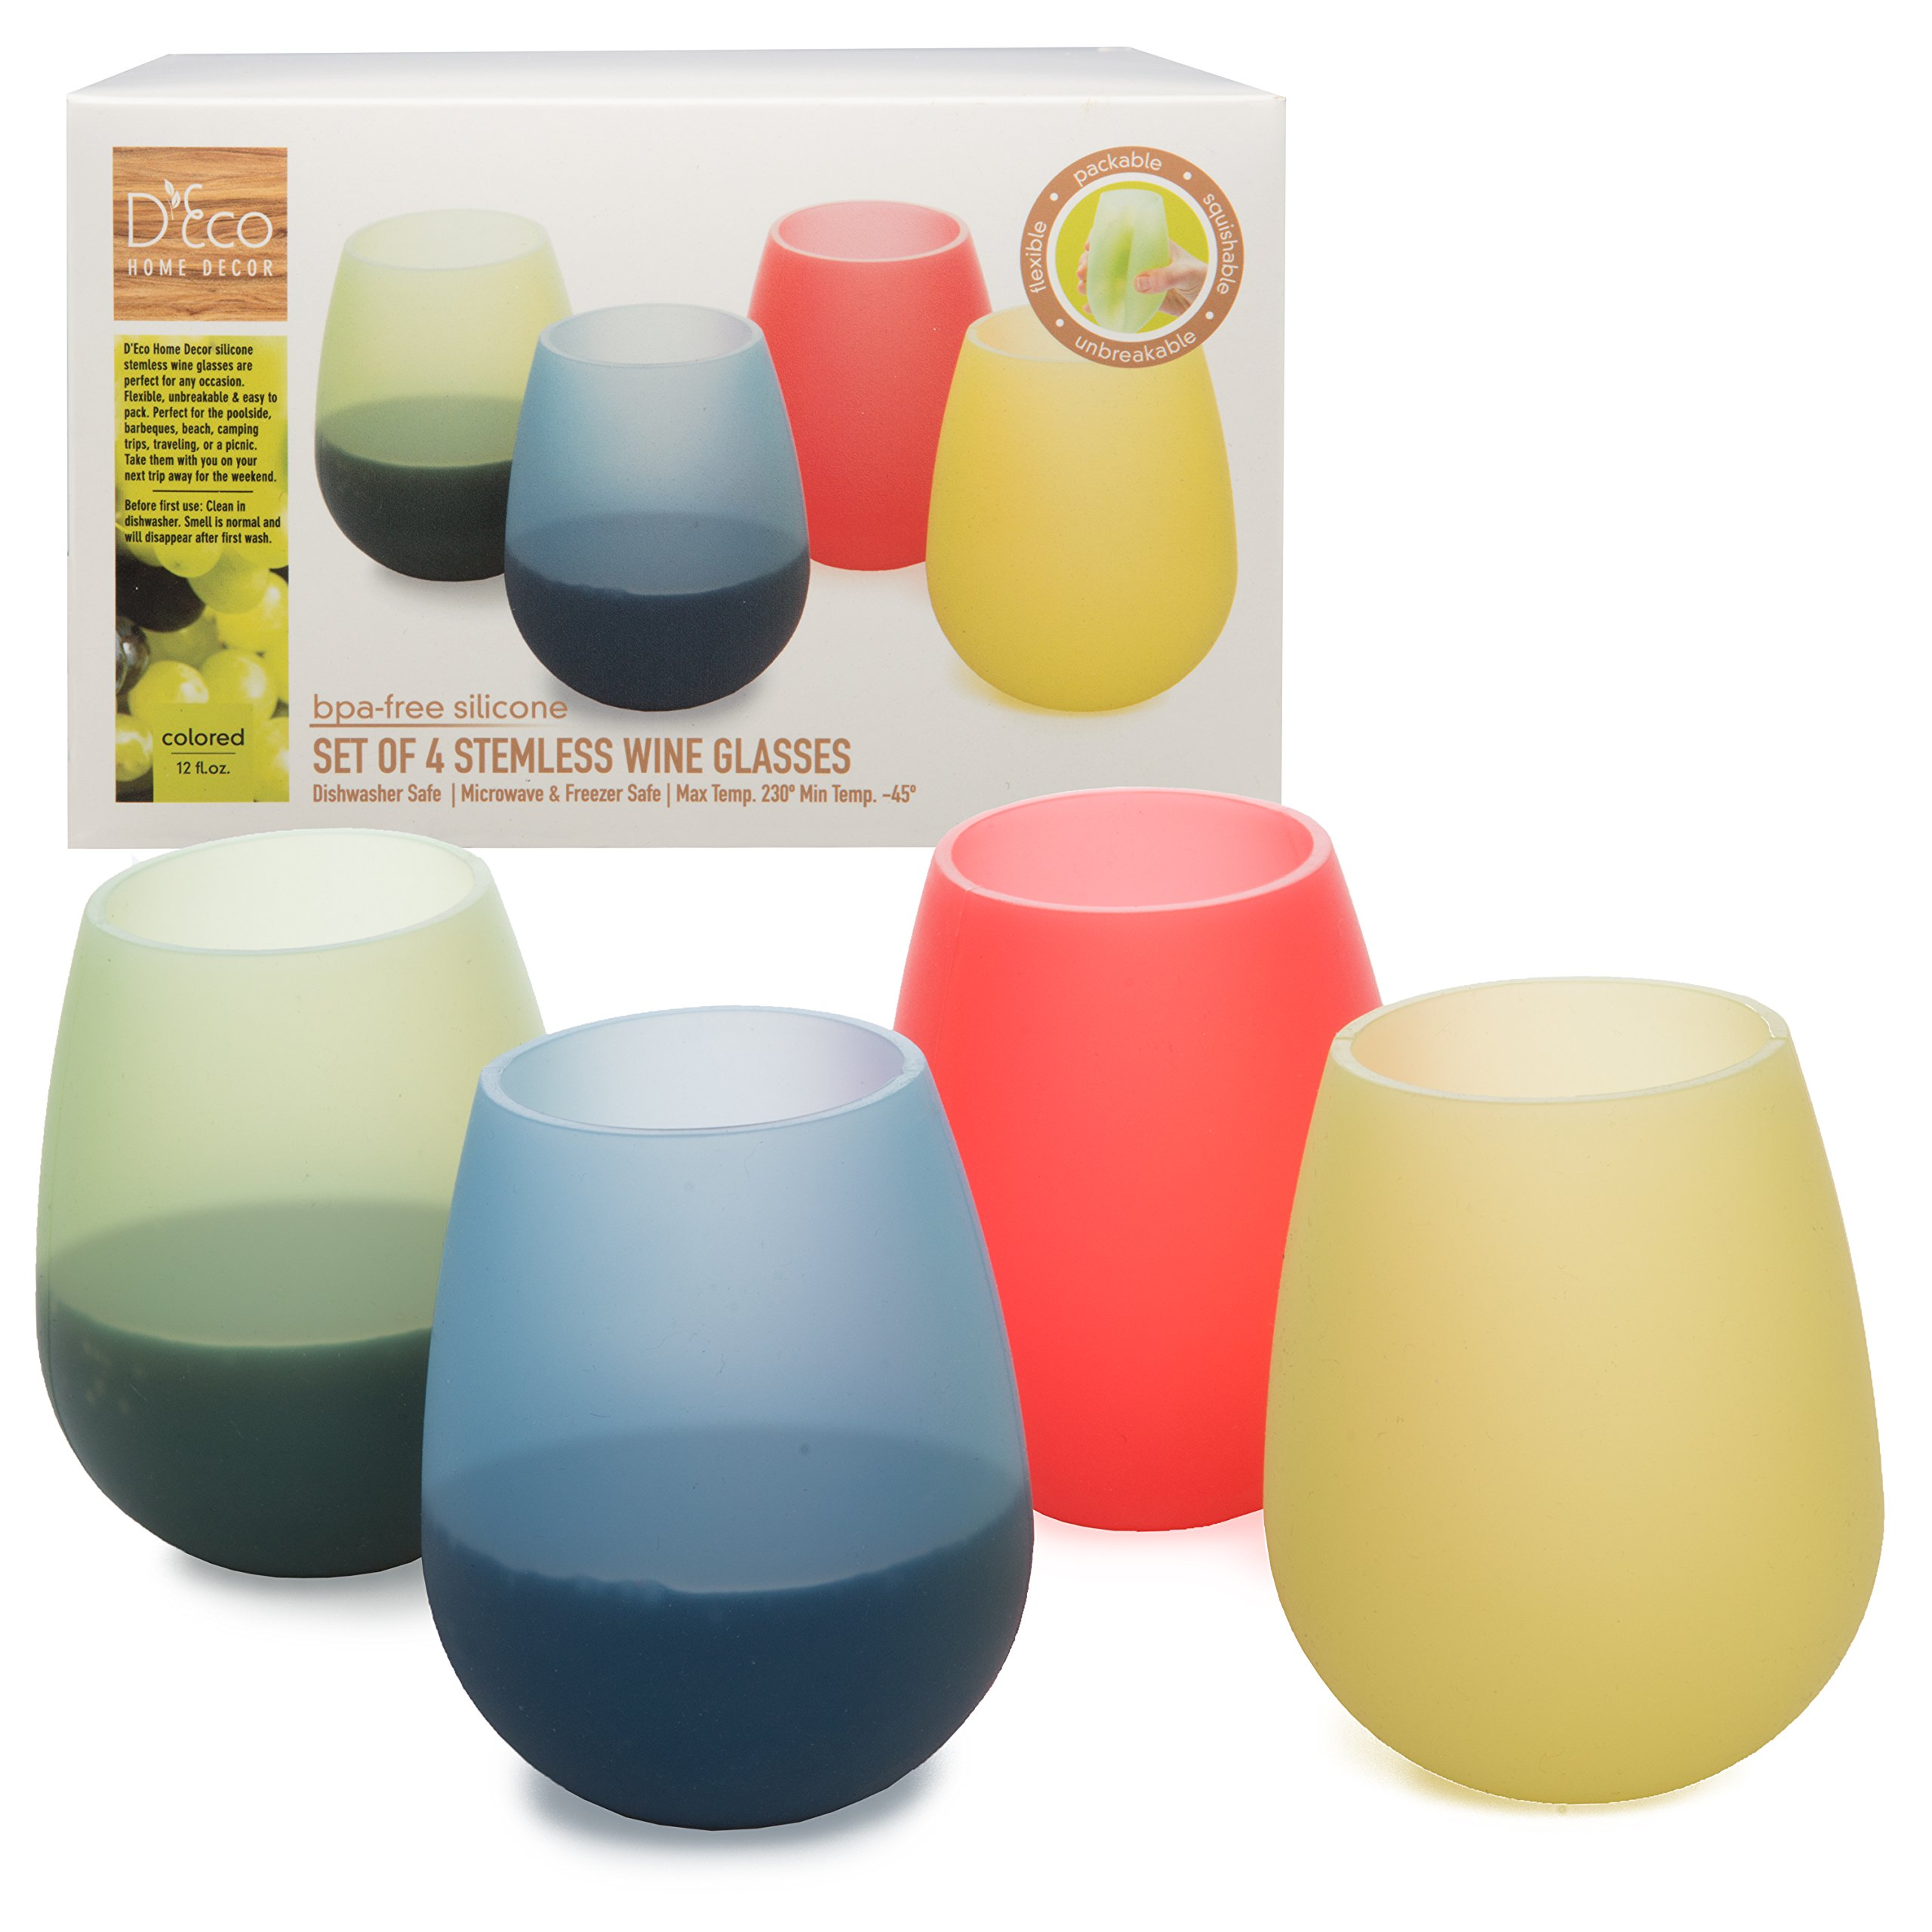 Unbreakable Silicone Wine Stemless Glasses- Set of 4 Colored- 12 oz - Food Grade, BPA Free - Flexible Like Rubber